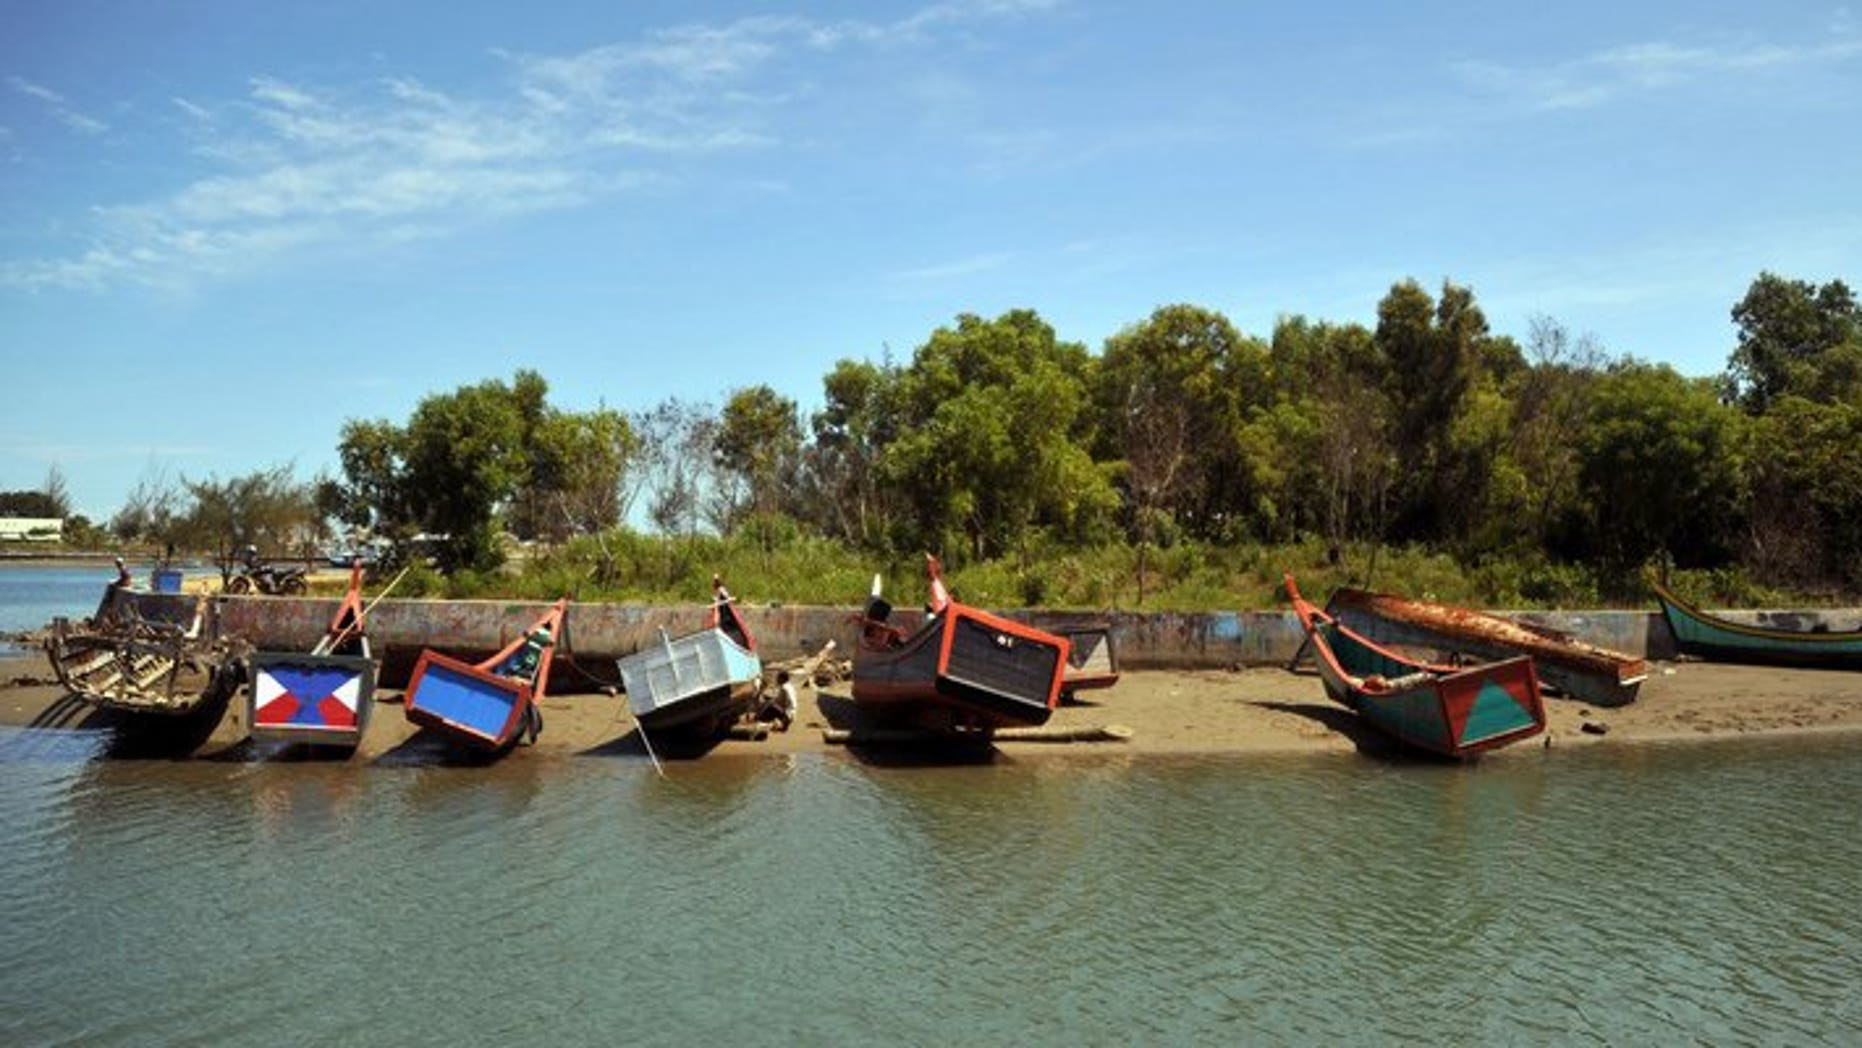 This file photo shows fishing boats near a village in Banda Aceh, on April 13, 2012. A strong 6.4-magnitude quake struck off the Indonesian island of Sumatra on Saturday, the US Geological Survey said, but no tsunami warning was issued.